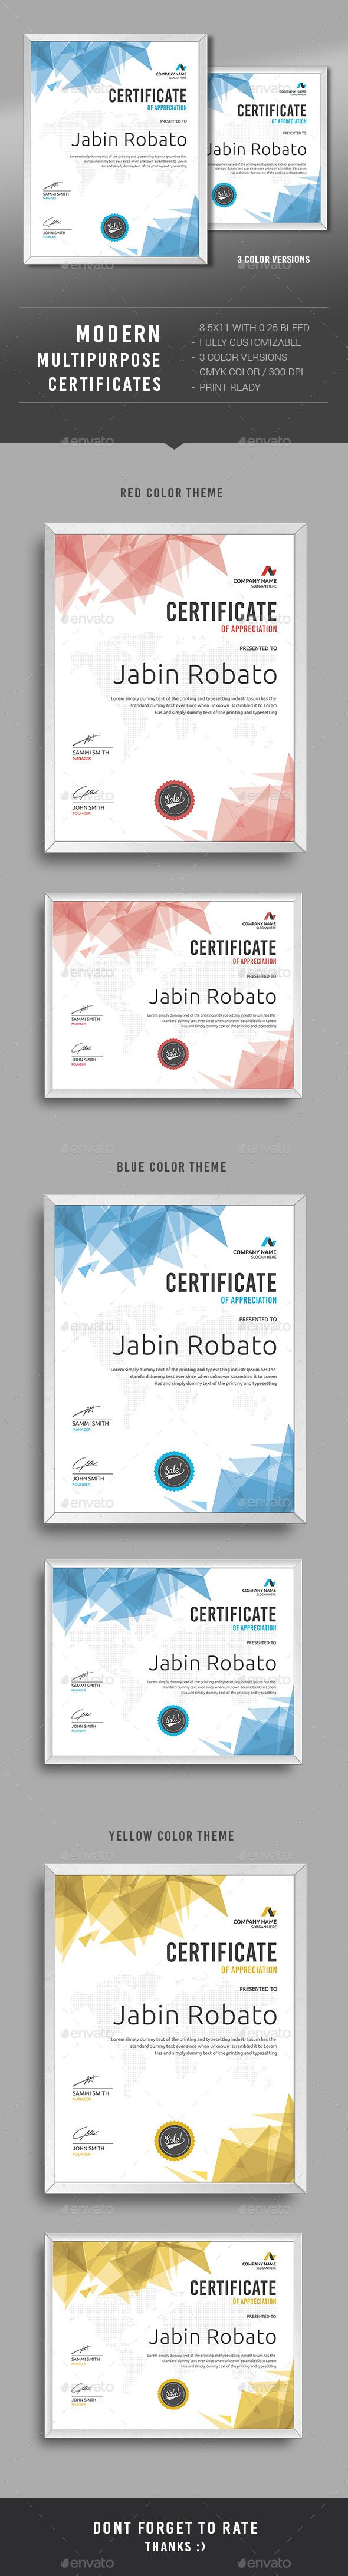 Modern Multipurpose Certificates Template PSD. Download here…